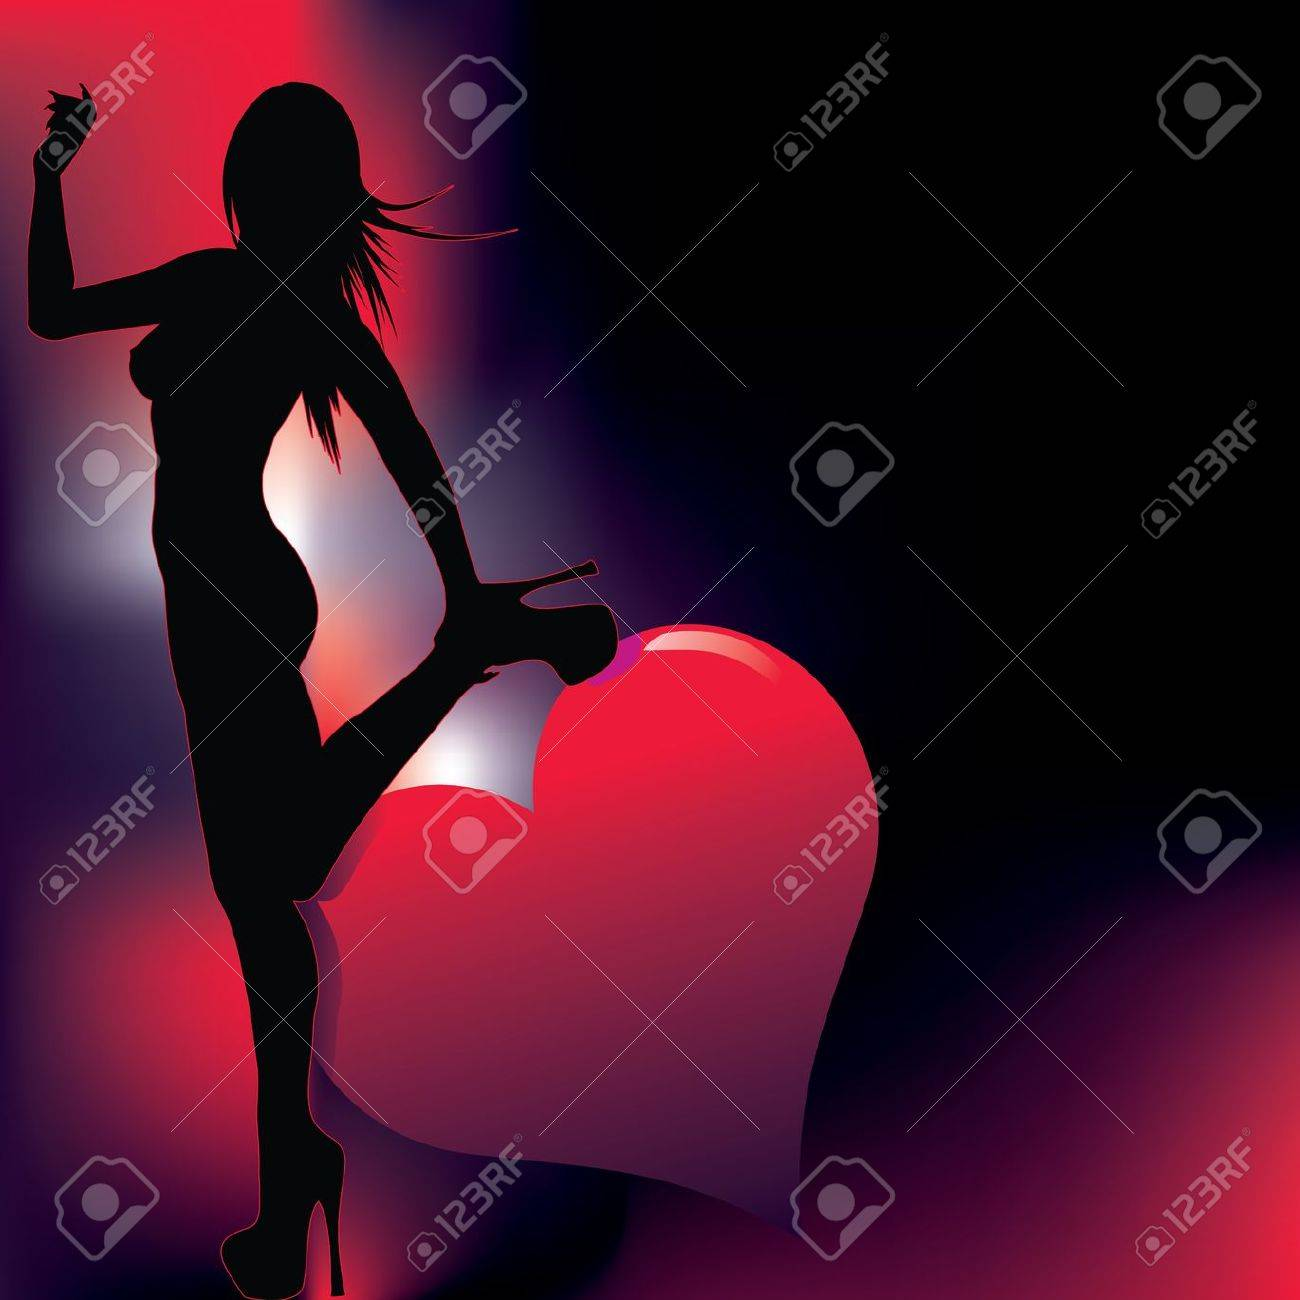 sexy girl silhouette with abstract background Stock Vector - 9865849